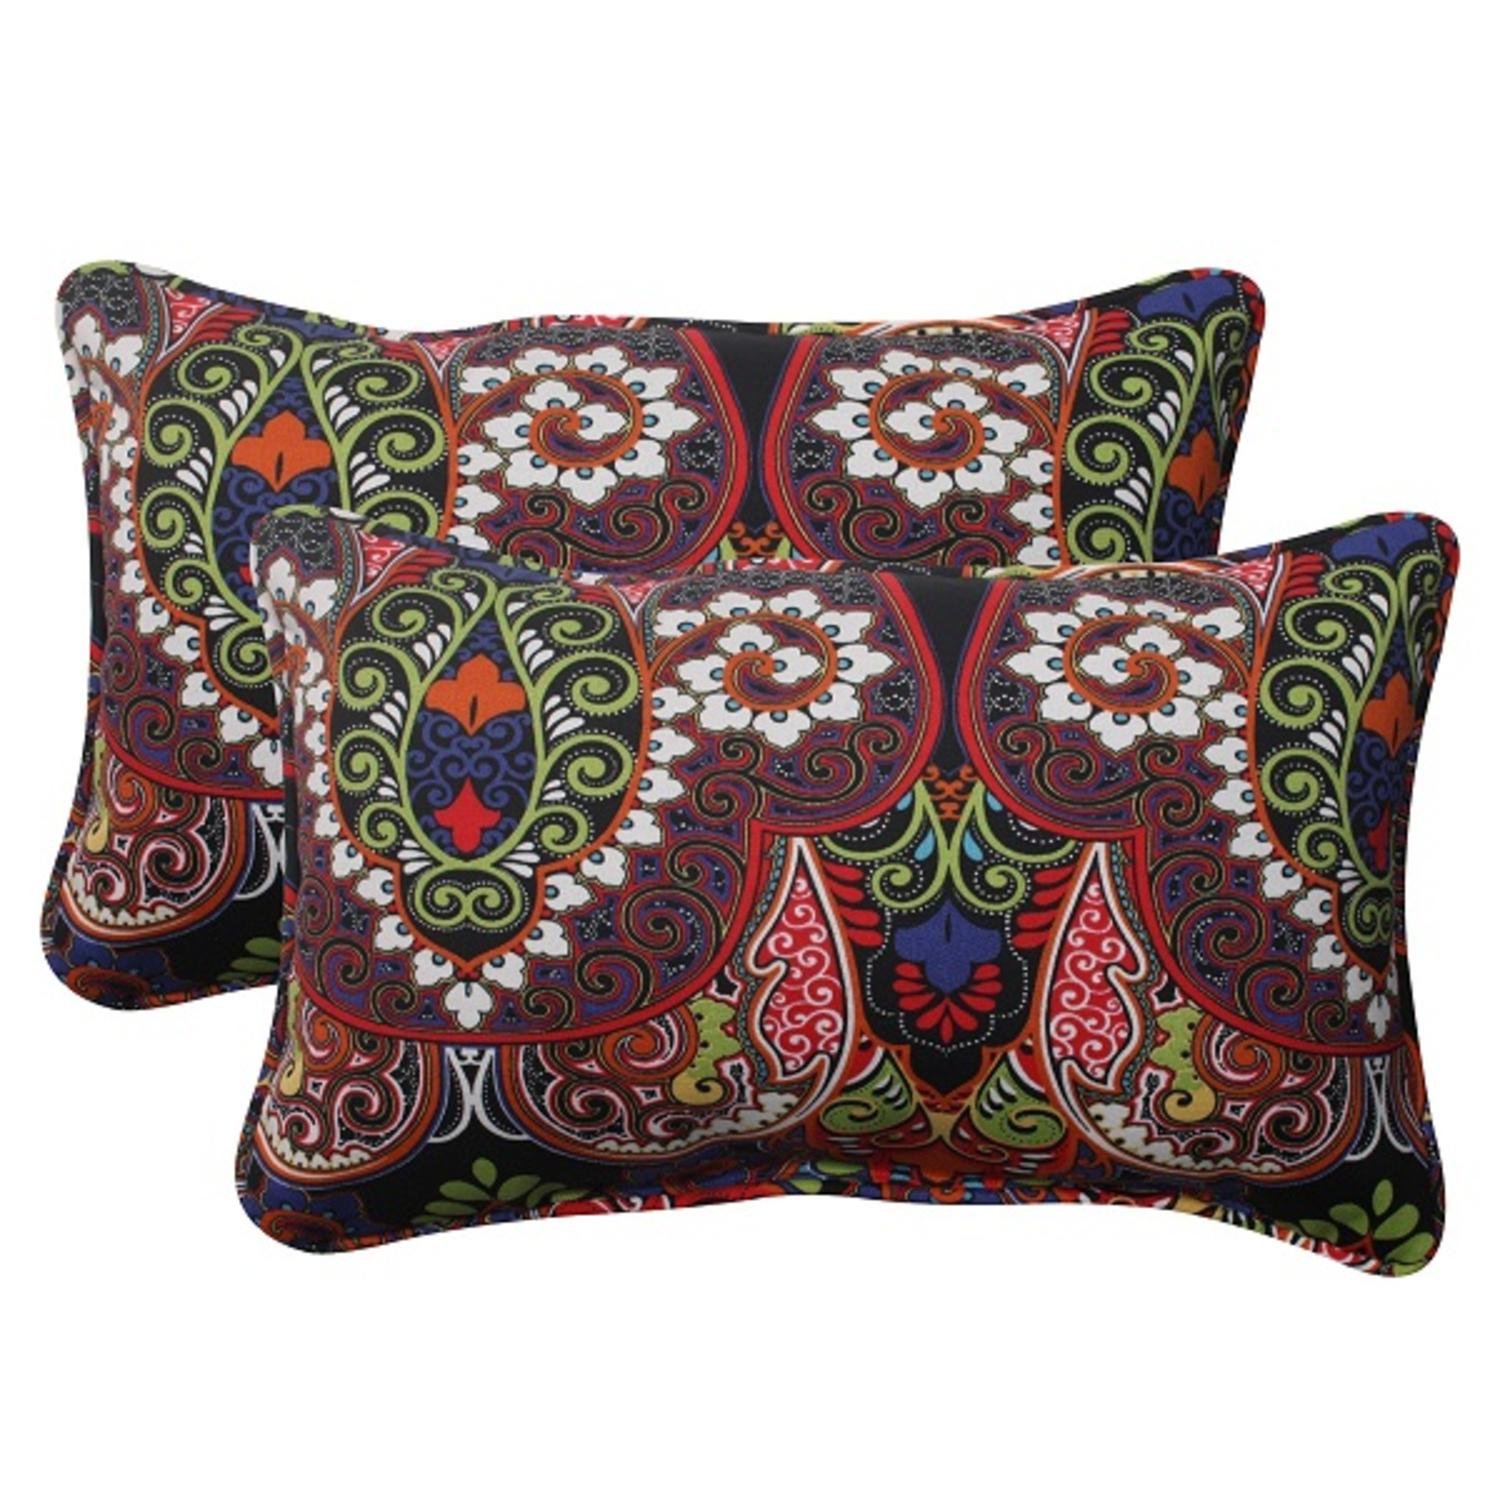 Set of 2 Black Paisely Maze Outdoor Corded Rectangular Throw Pillows 18.5""